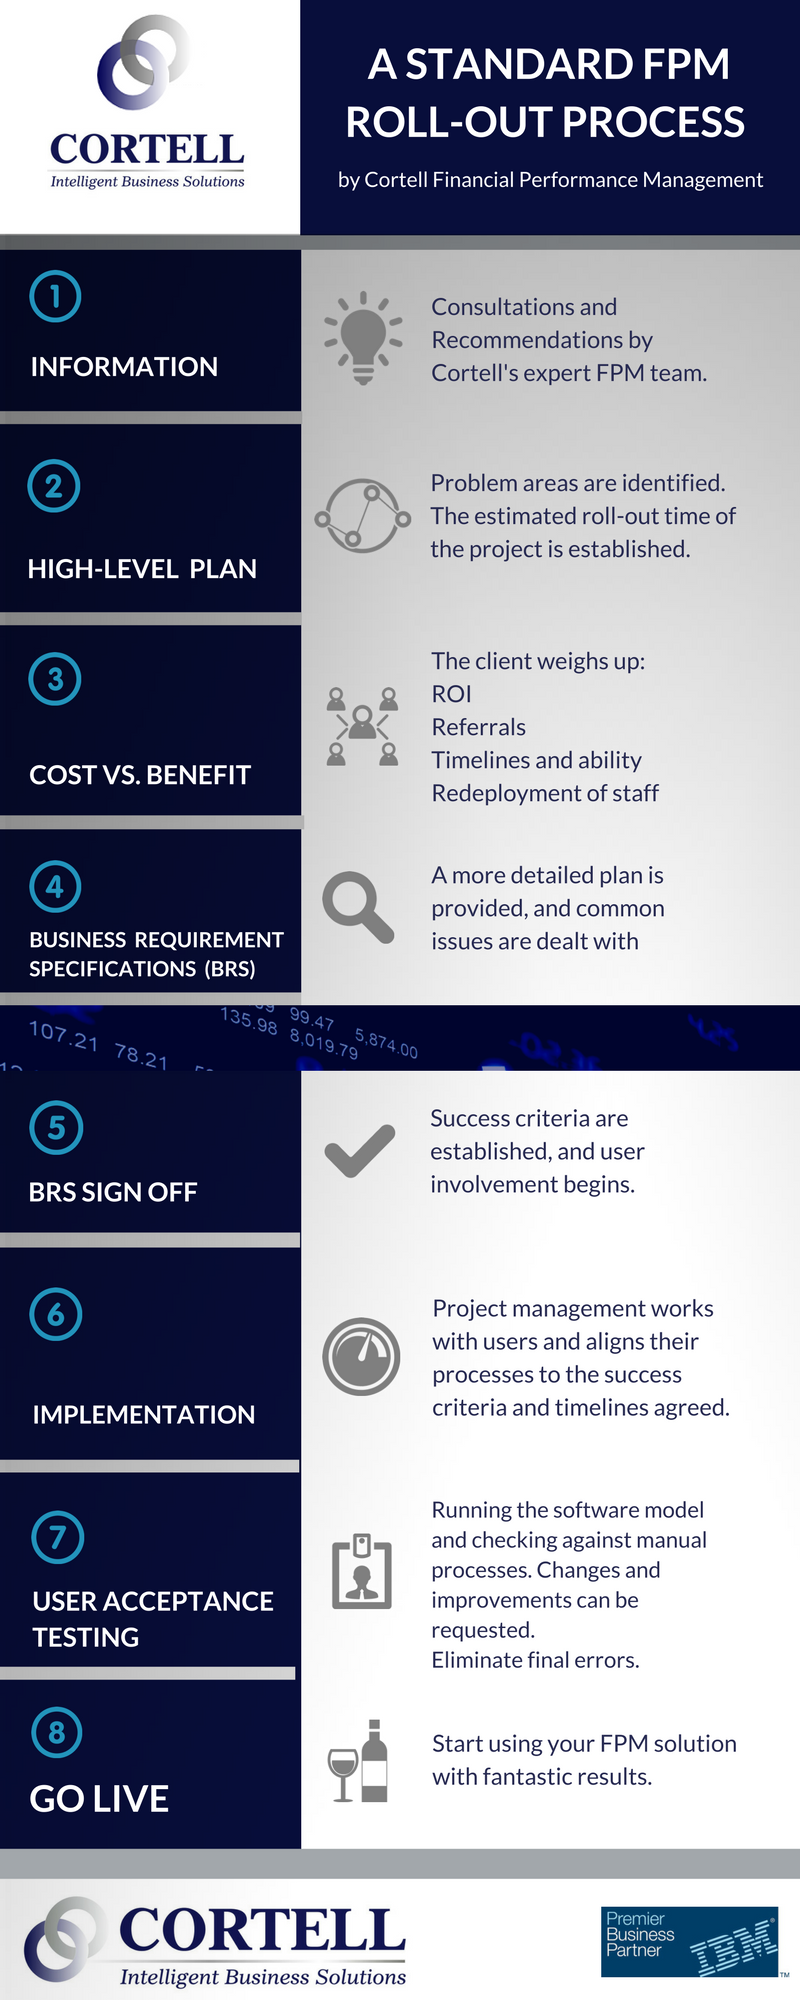 The Cortell standard Financial Performance Management Rollout Process: From initial consultation to going live.